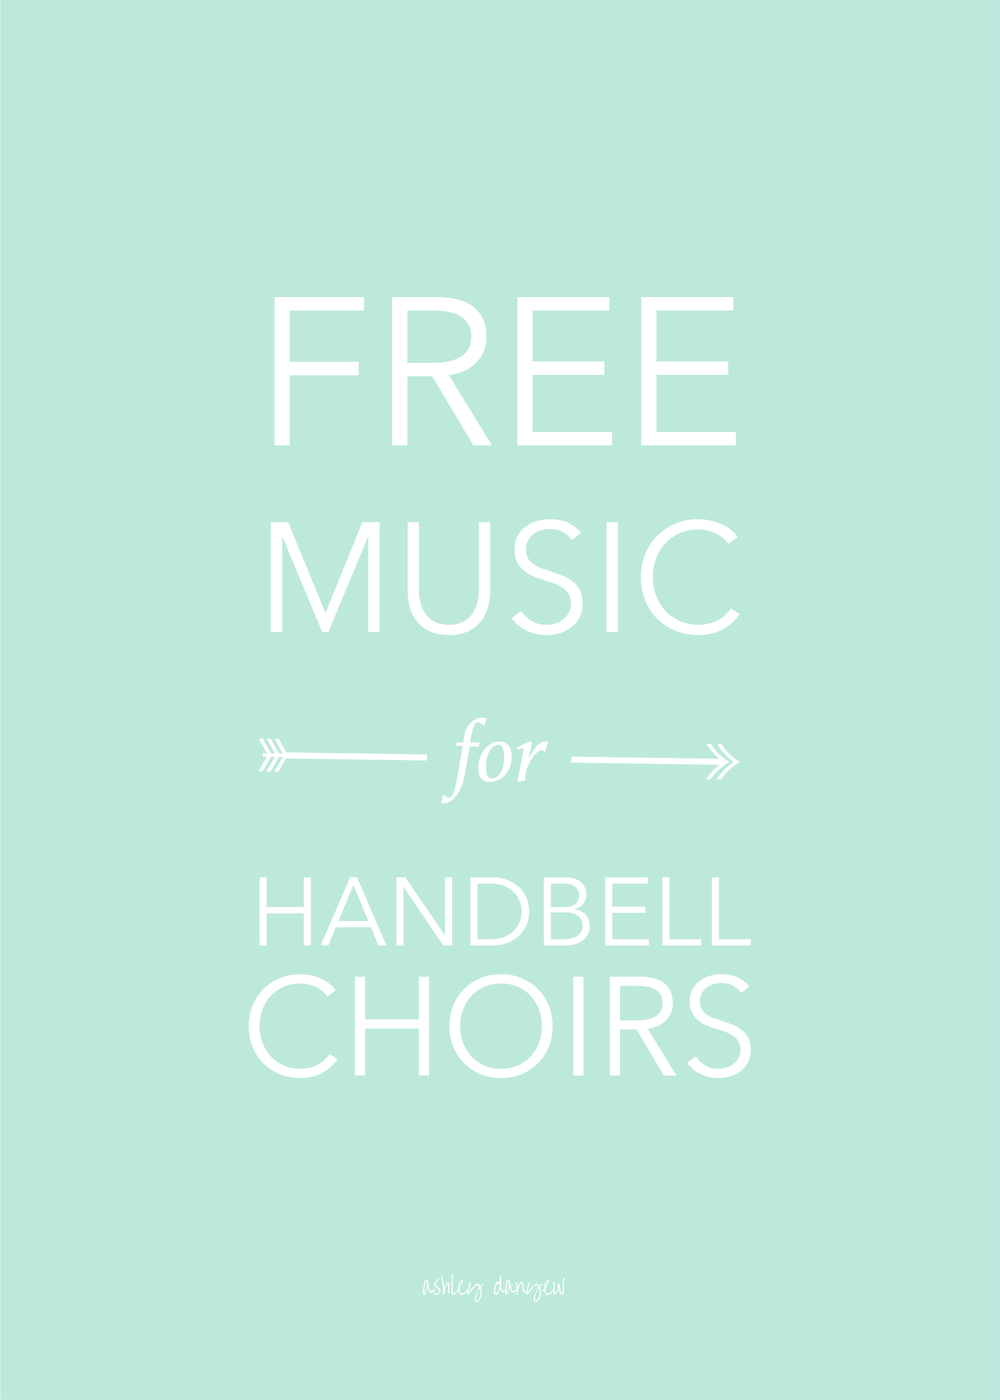 Free music resources for handbell choirs | @ashleydanyew